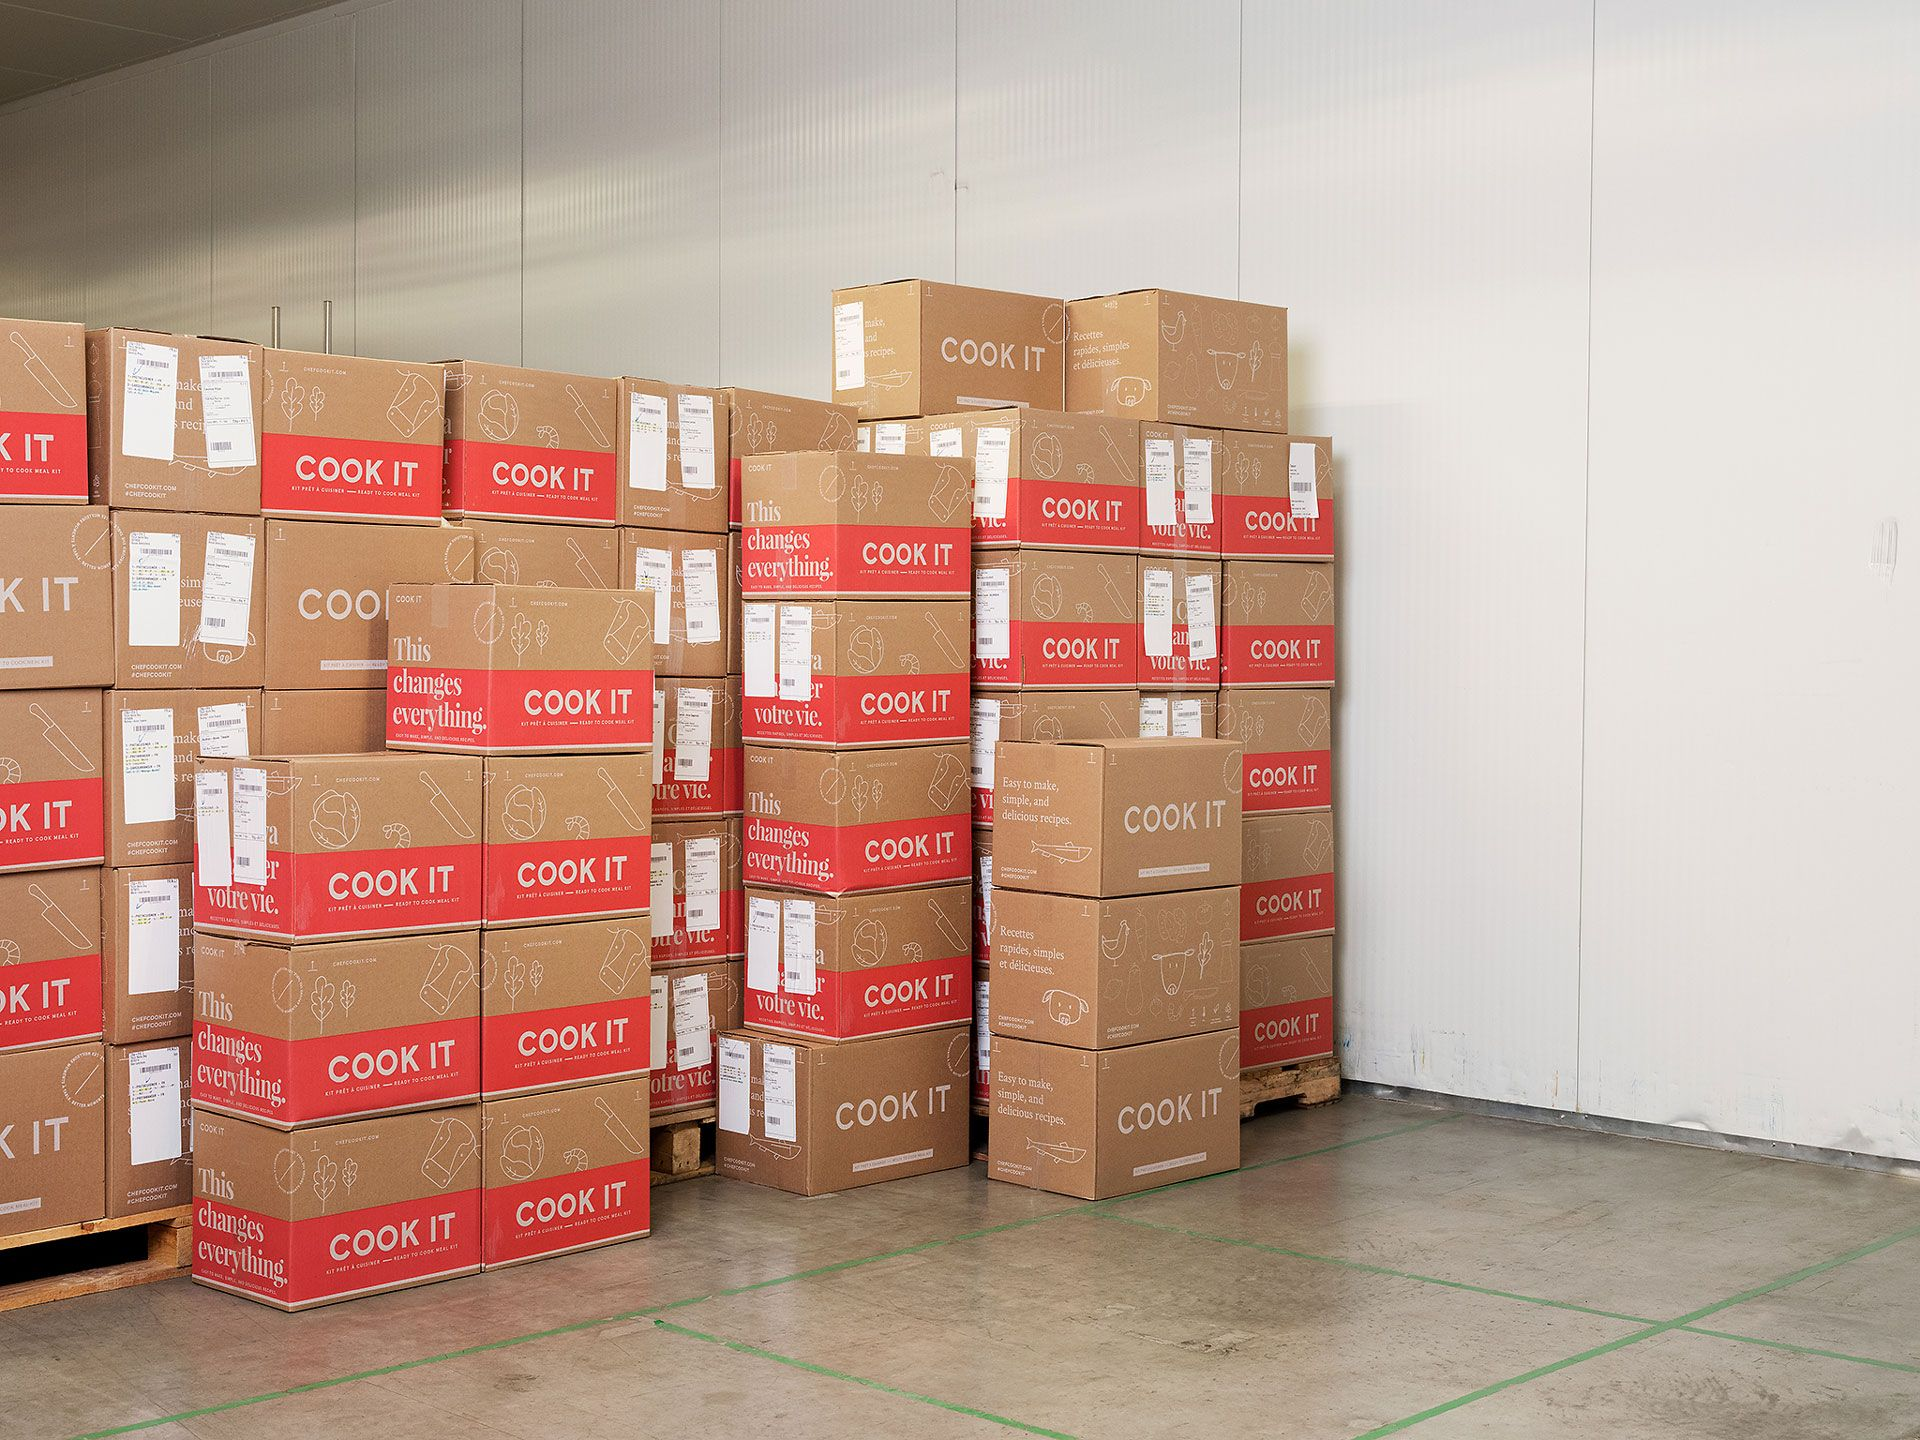 Photo in a bright warehouse of piles of Cook It boxes on palettes and stacked besides.